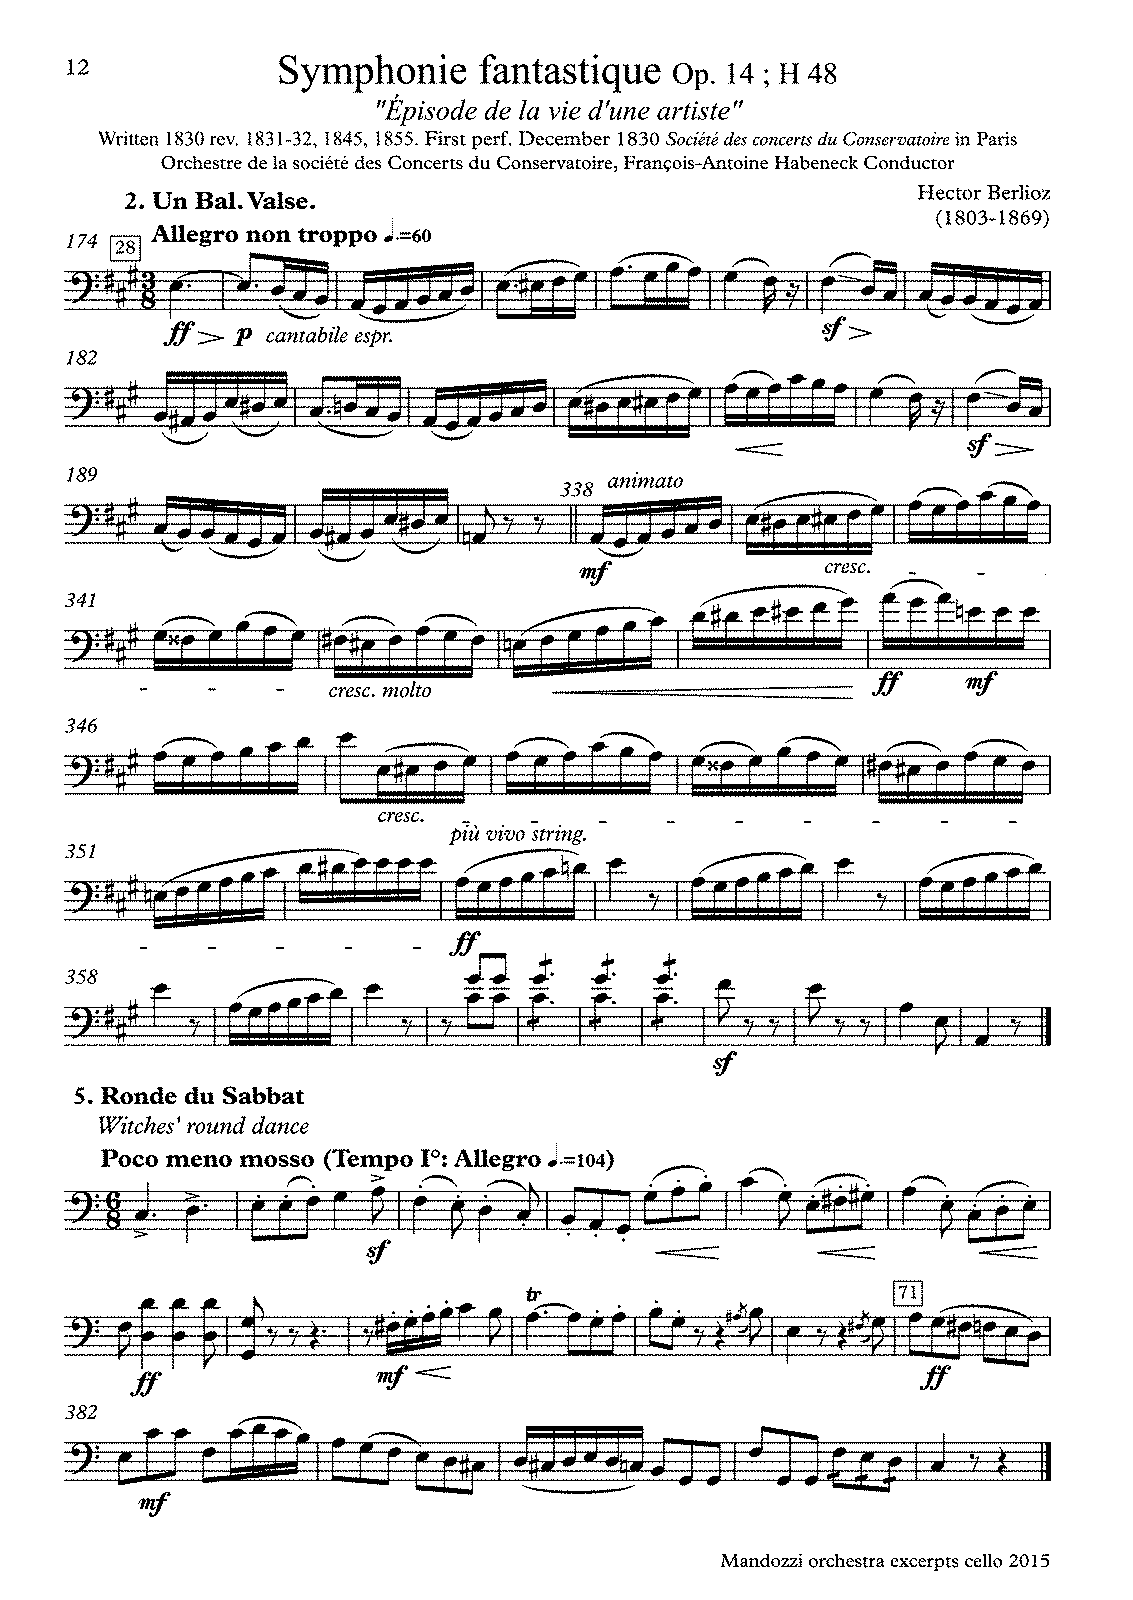 PMLP03653-Berlioz Symph Fantastique Cello expts Mandozzi.pdf